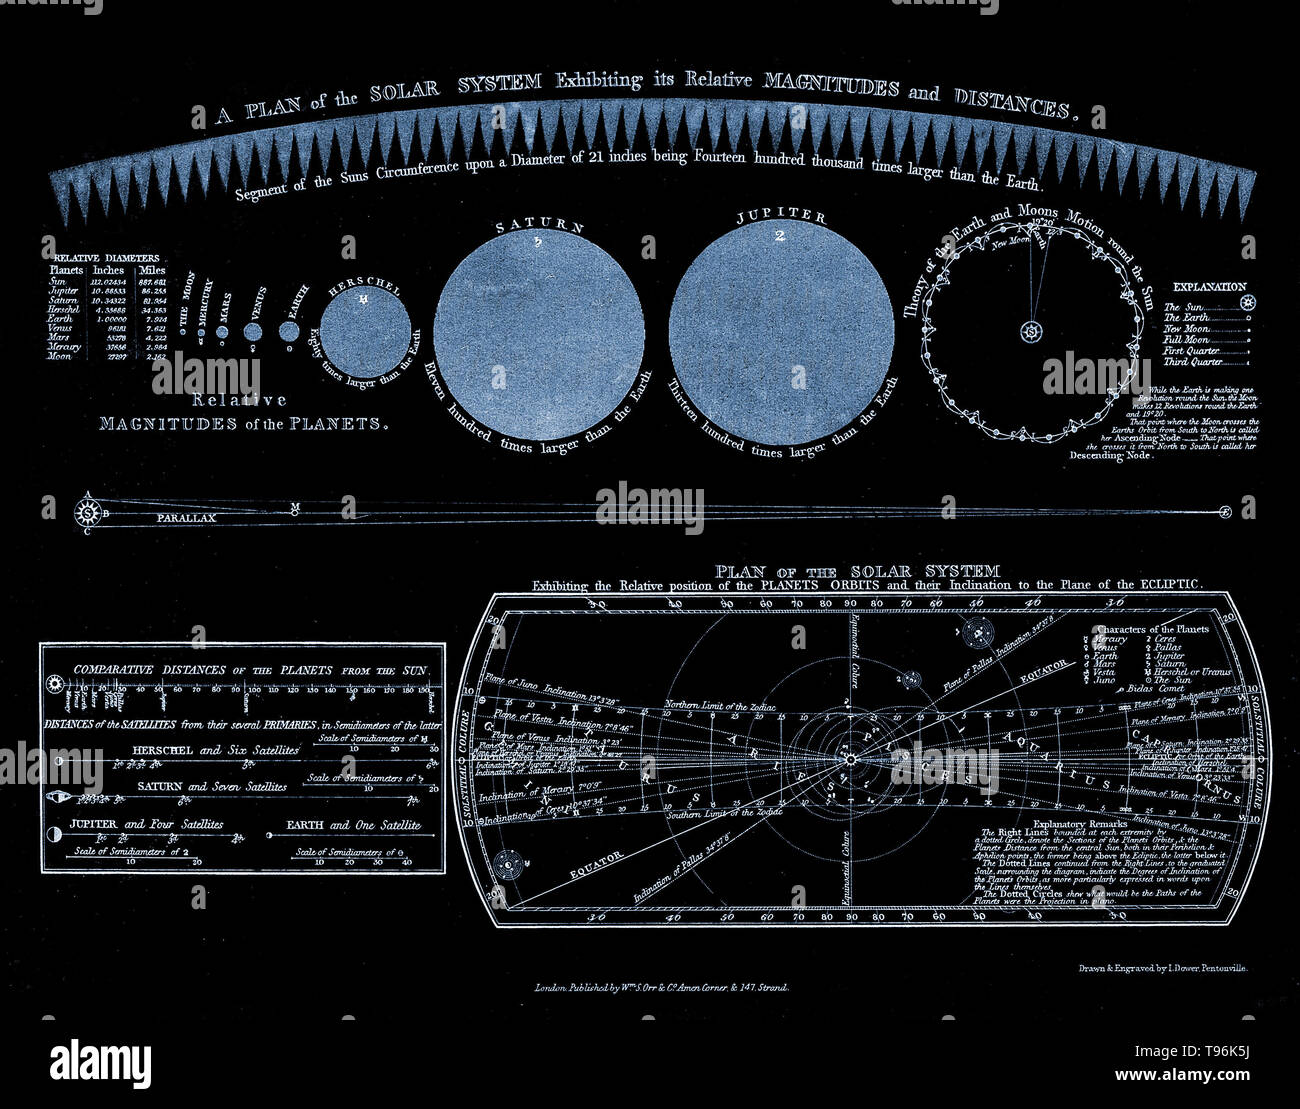 hight resolution of a plan of the solar system exhibiting relative magnitudes and distances the planet uranus